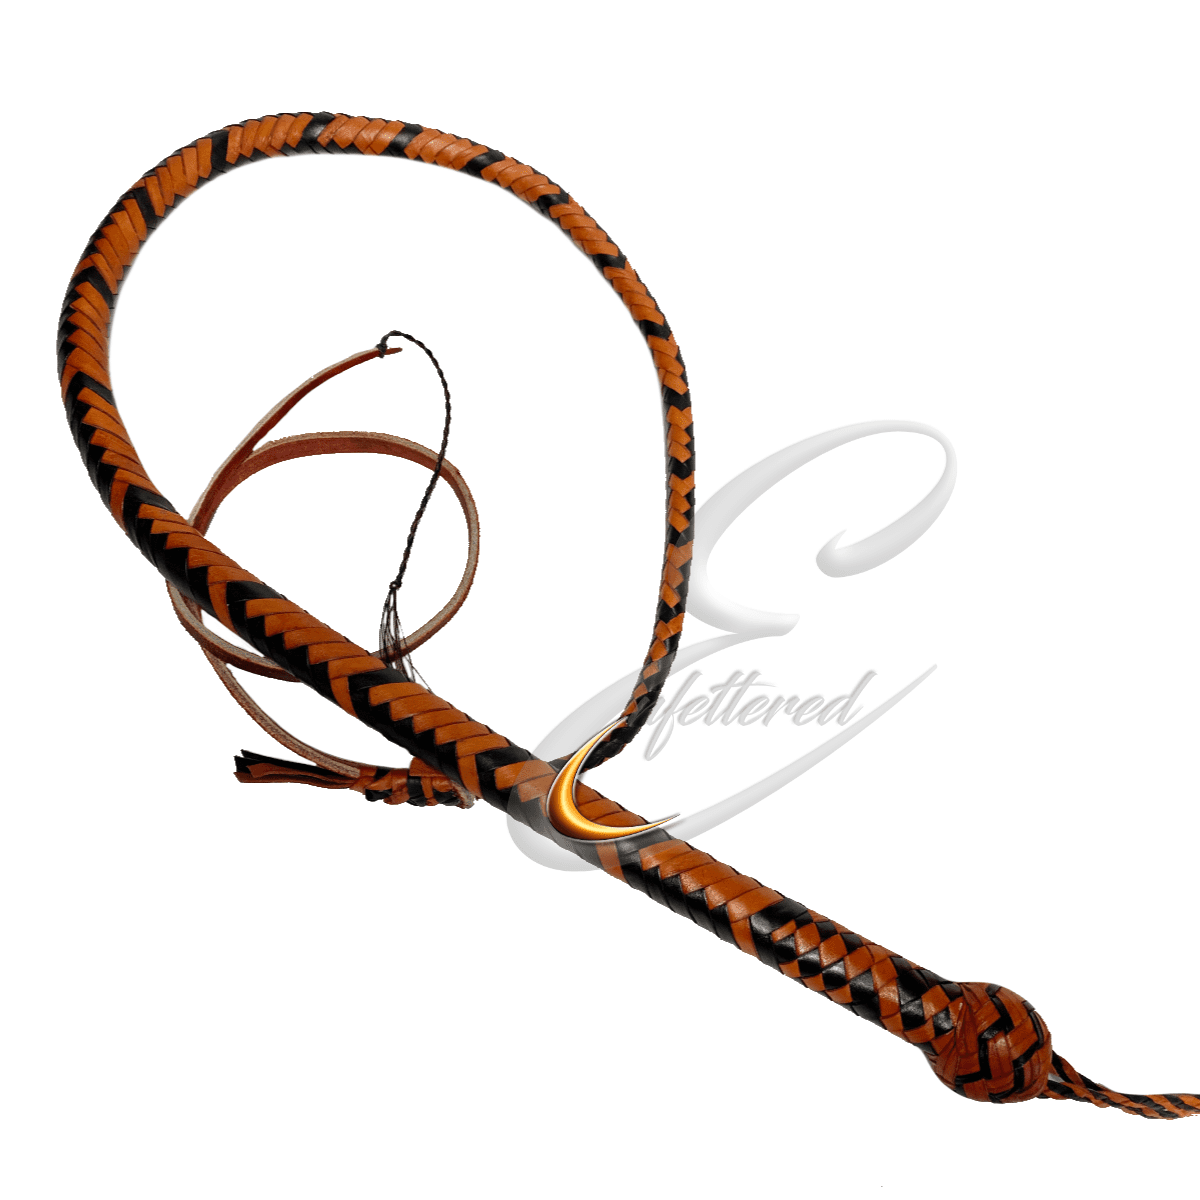 Enfettered Kangaroo Hide Leather Snake Whip 3ft Black/Saddletan